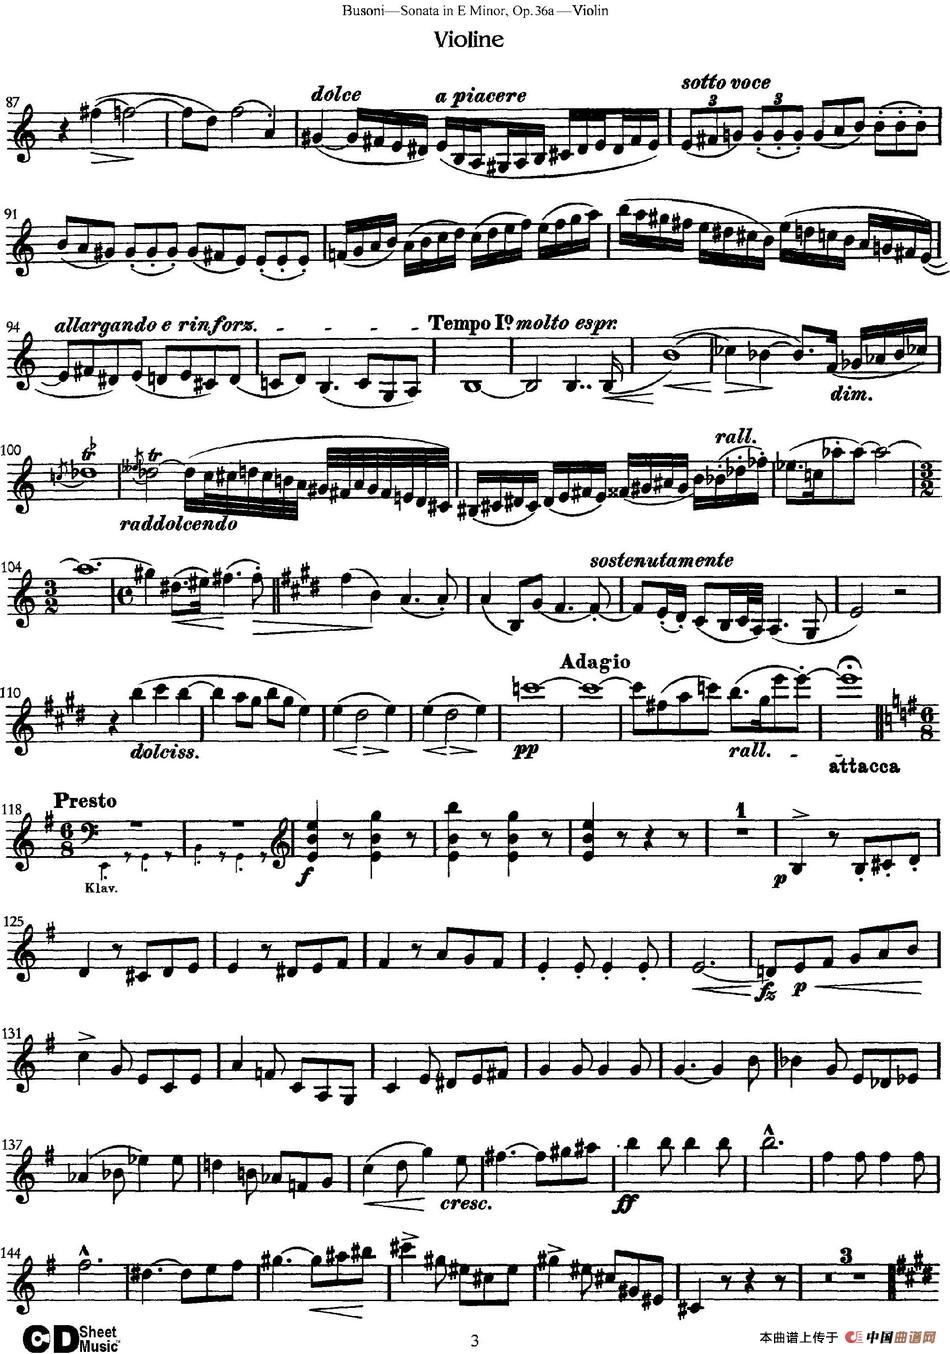 Violin Sonata No.2 in E Minor Op.36(1)_原文件名:Violin Sonata No.2 in E Minor, Op.36_页面_03.jpg